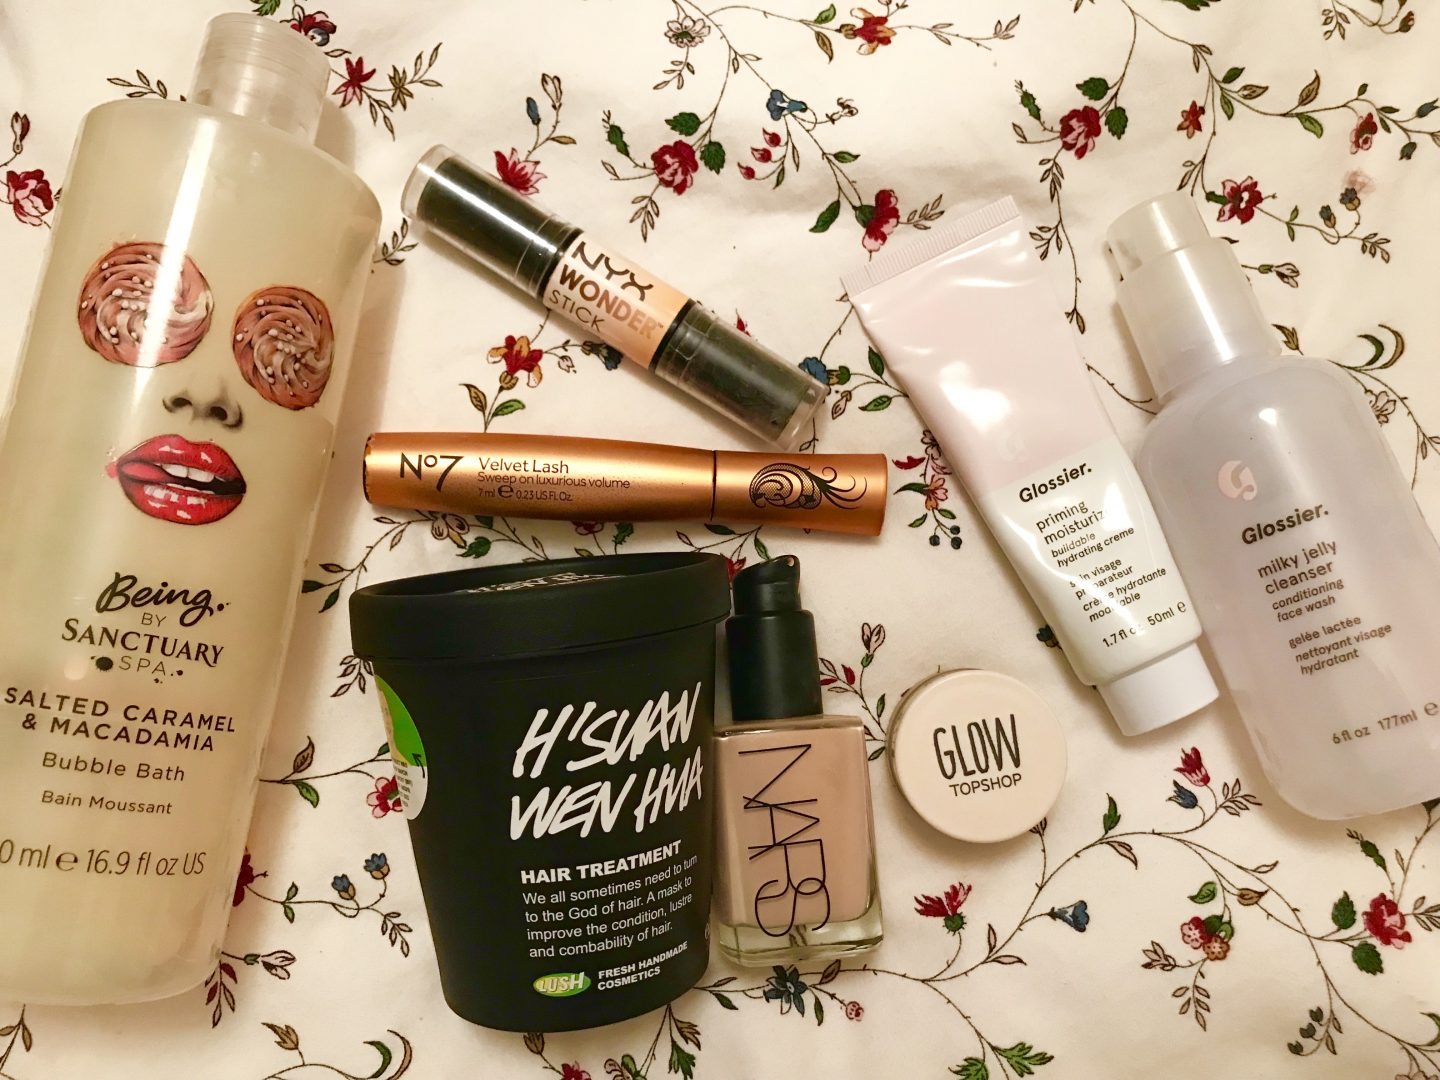 Products I'm Trying To Use Up